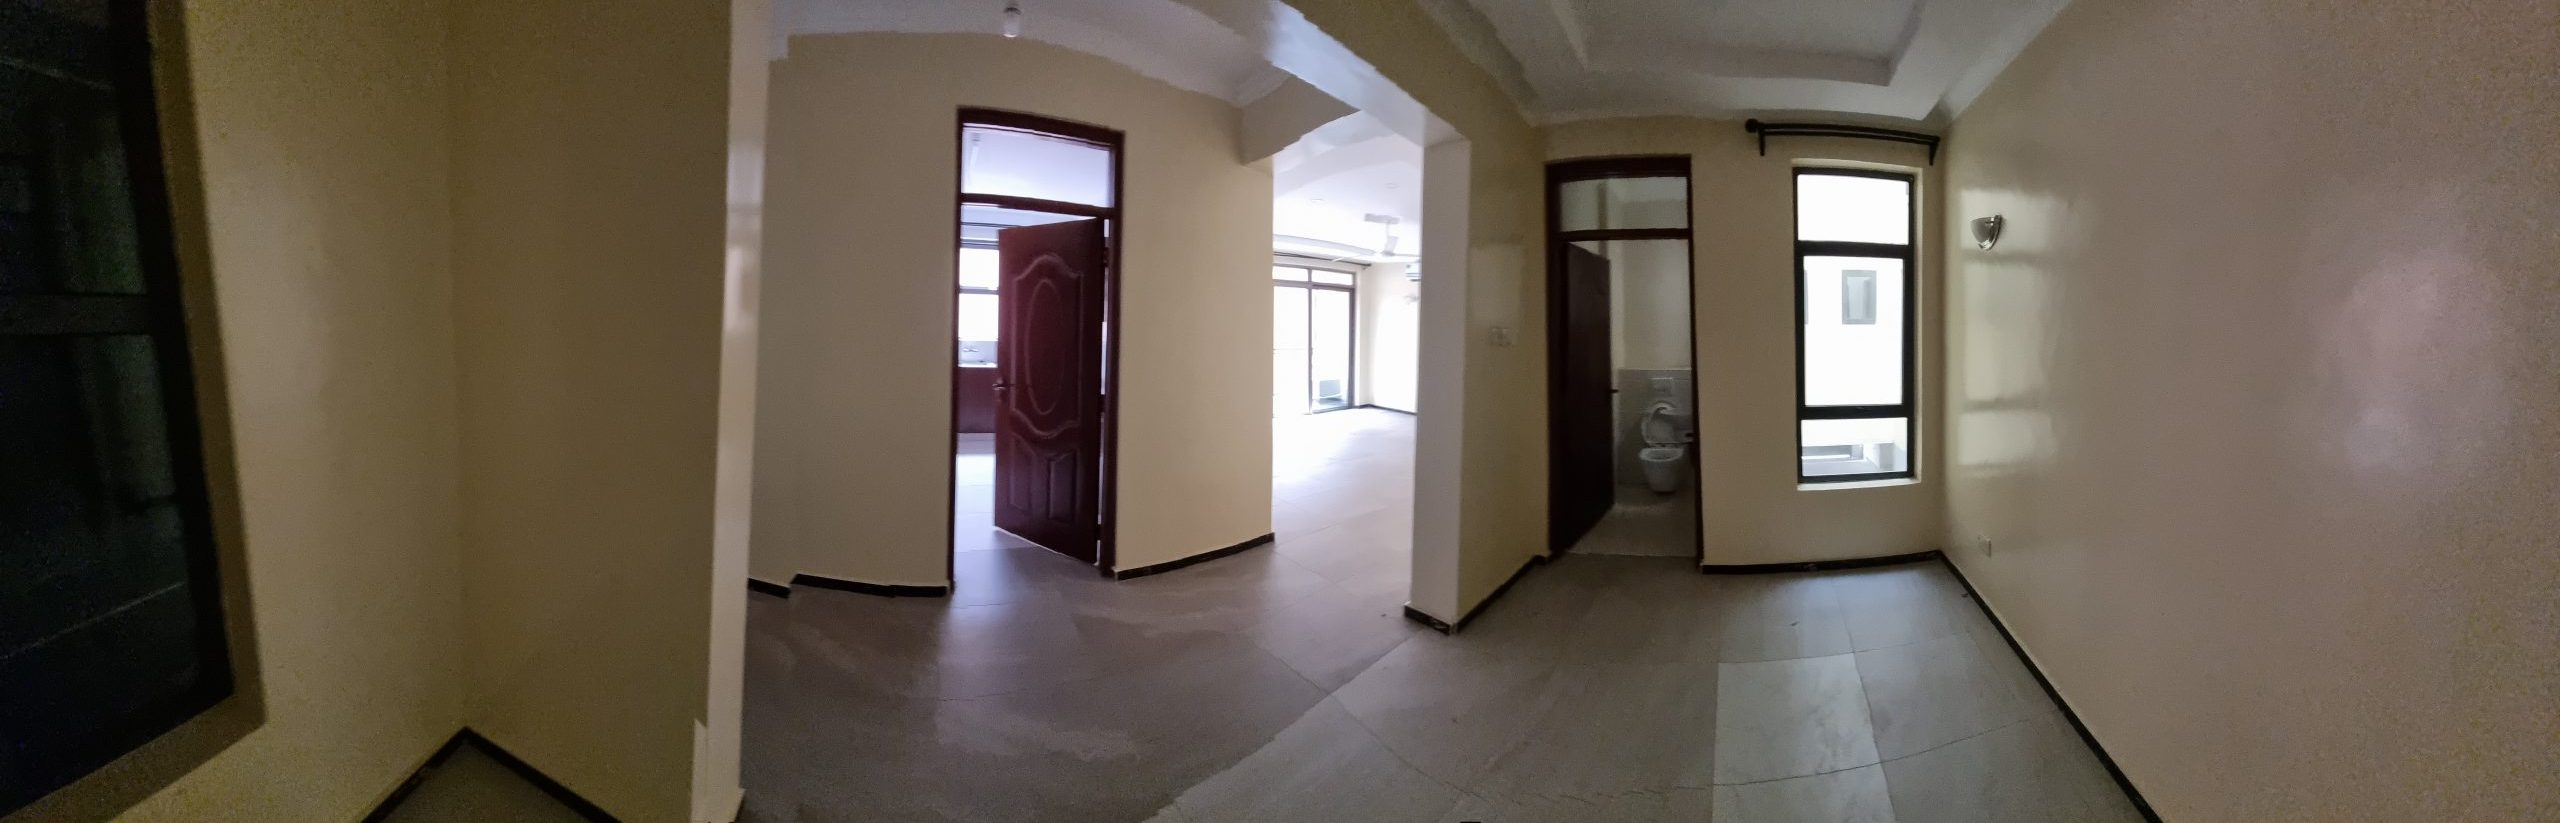 2 br apartment for rent in mtwapa-Kezia Spring